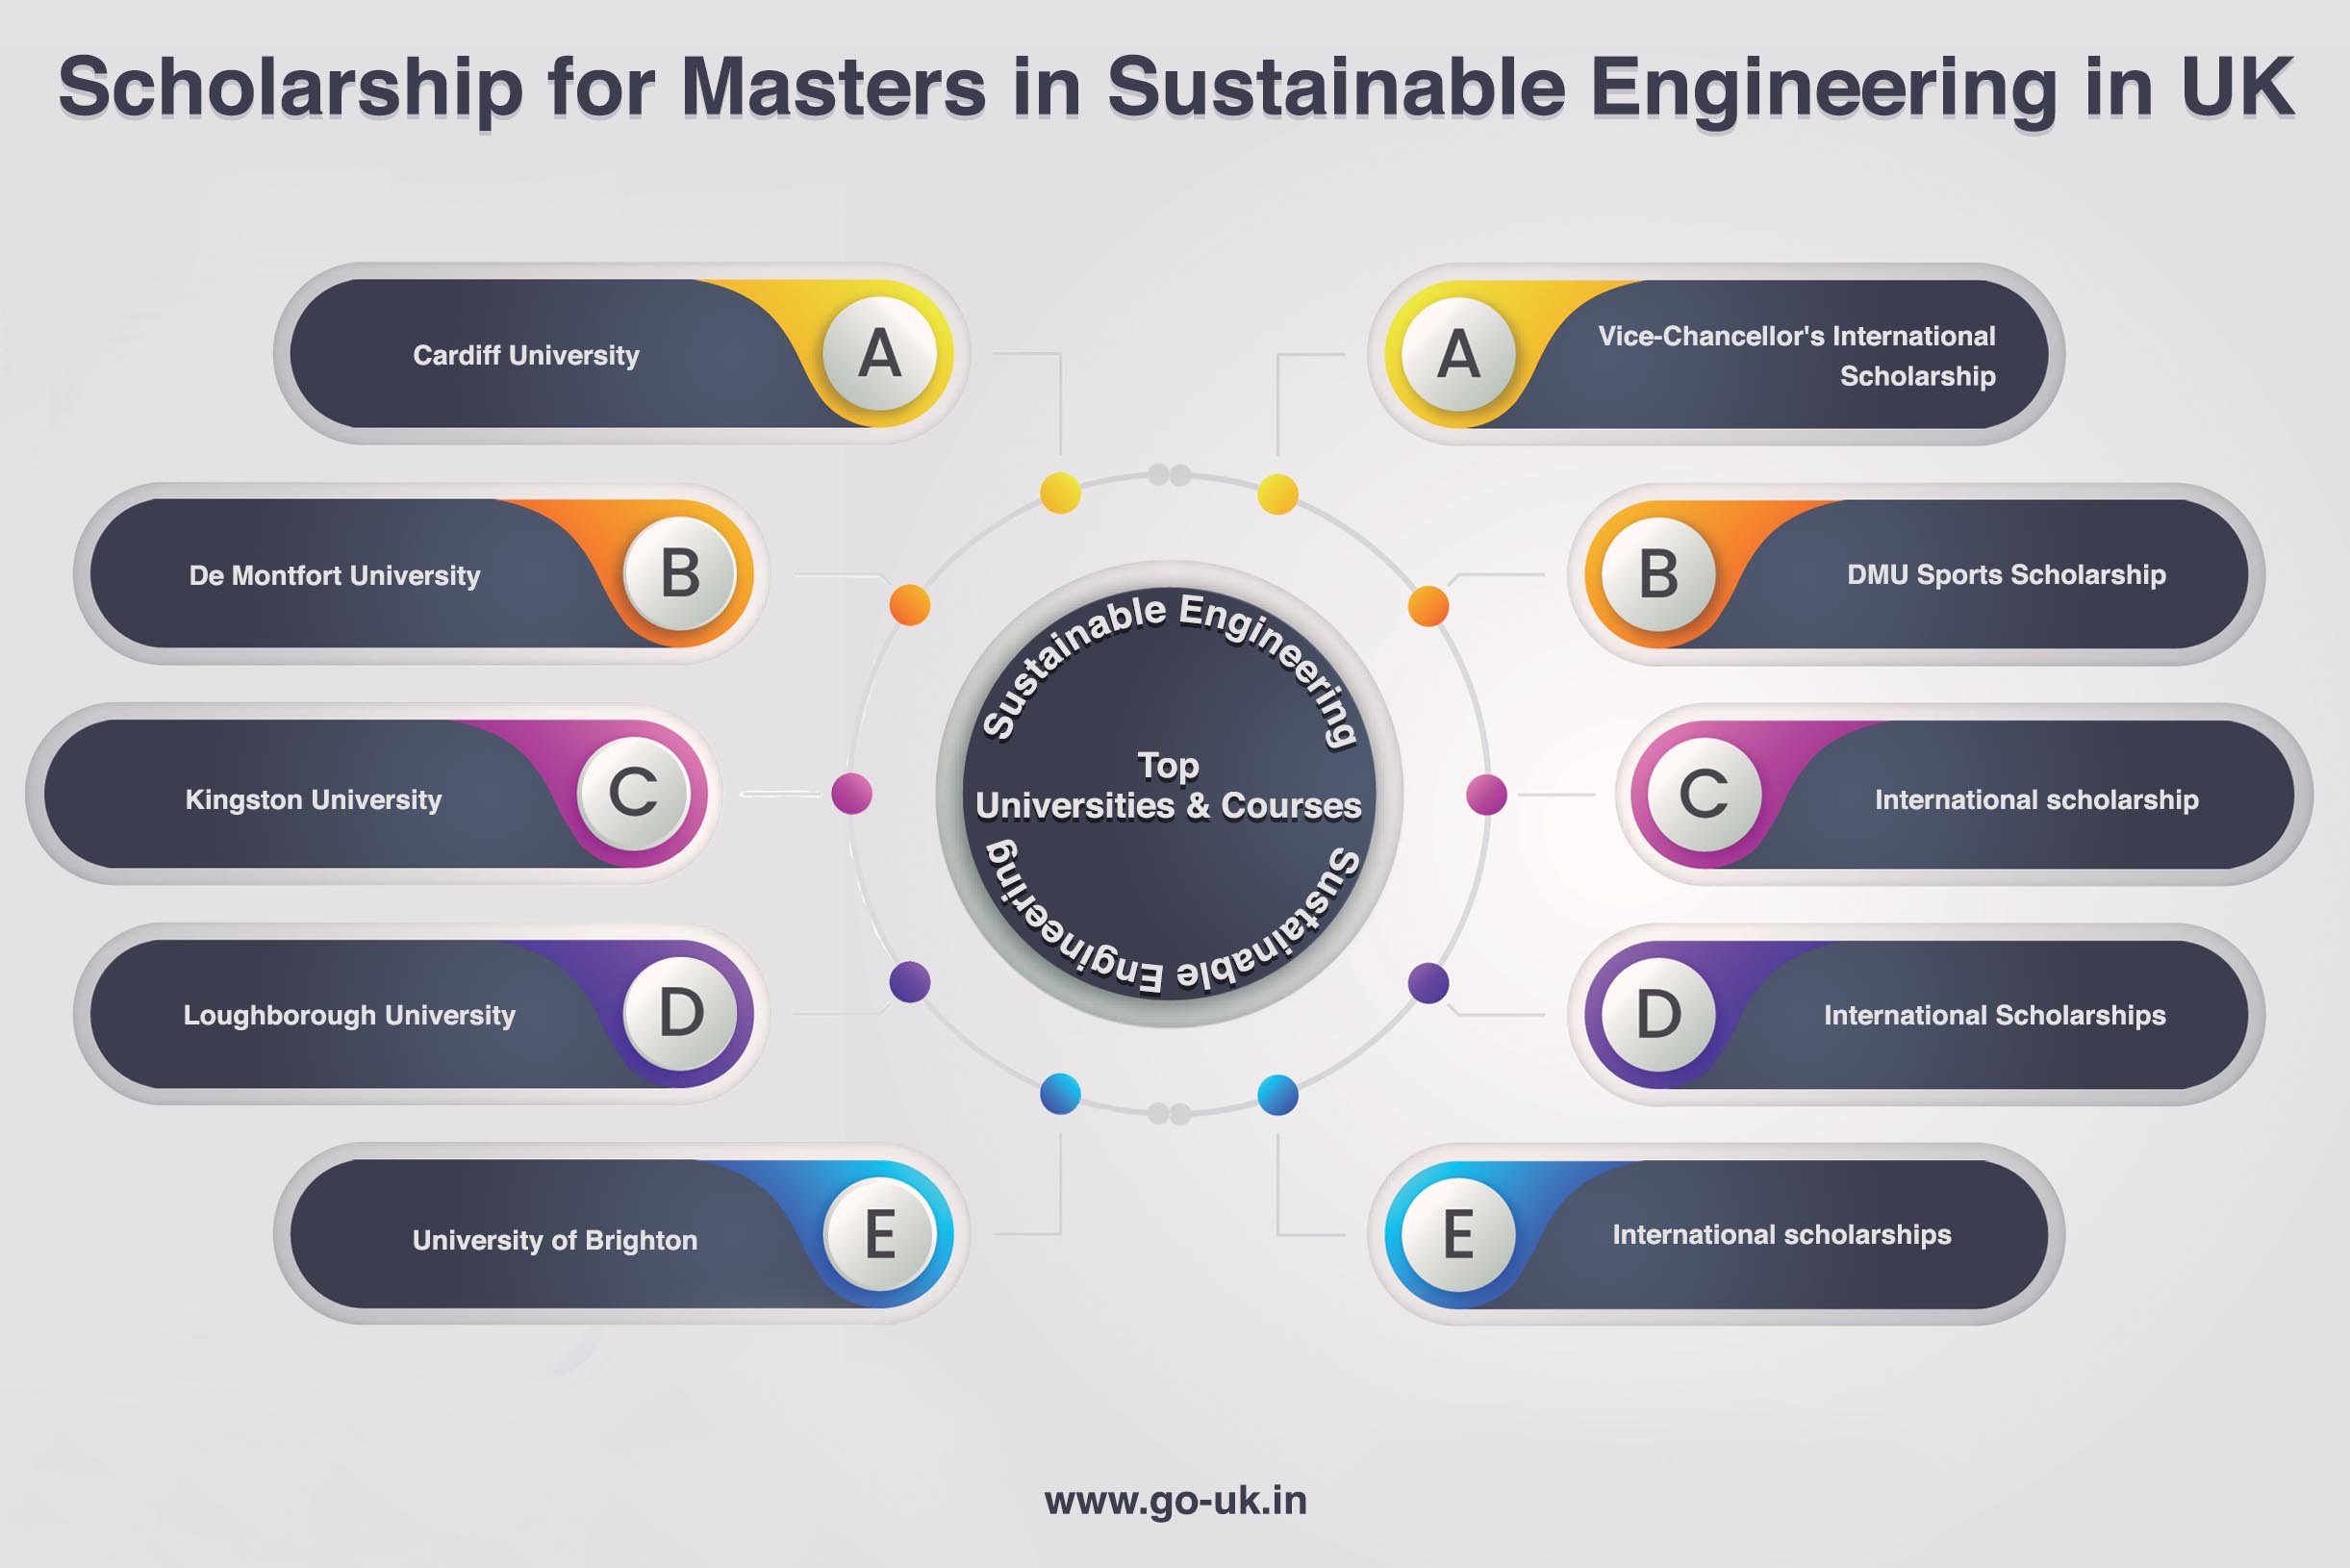 Scholarships for Masters in Sustainable Engineering in UK